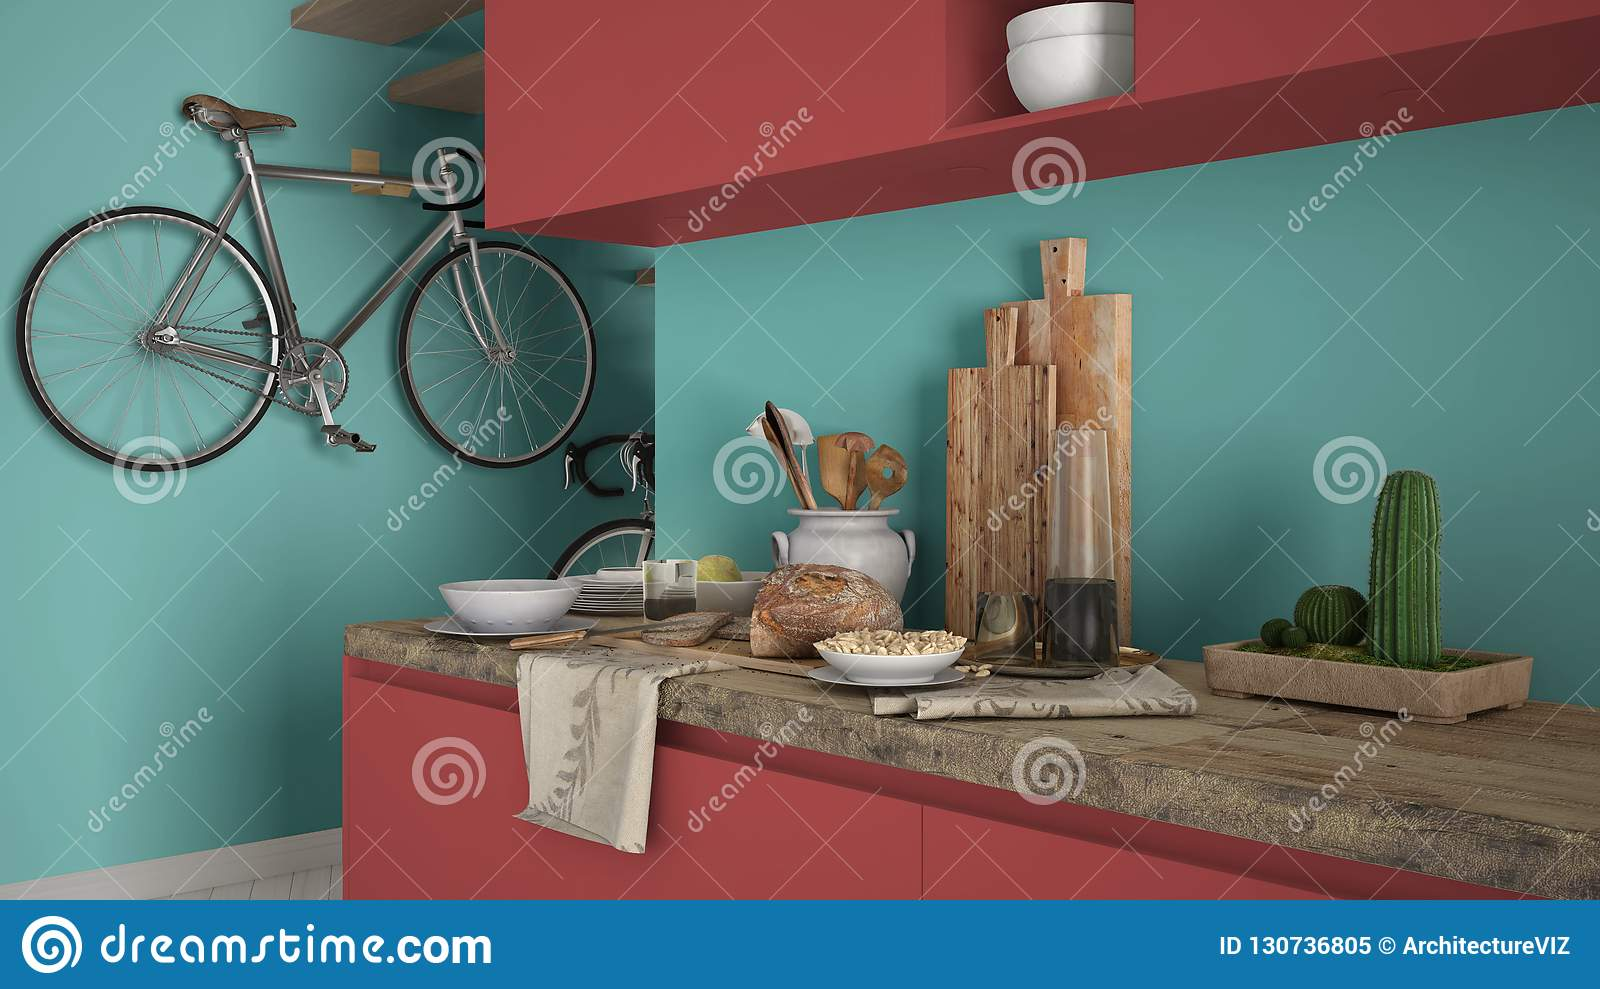 Minimalist modern kitchen close up with healthy breakfast, colored contemporary red and turquoise interior design